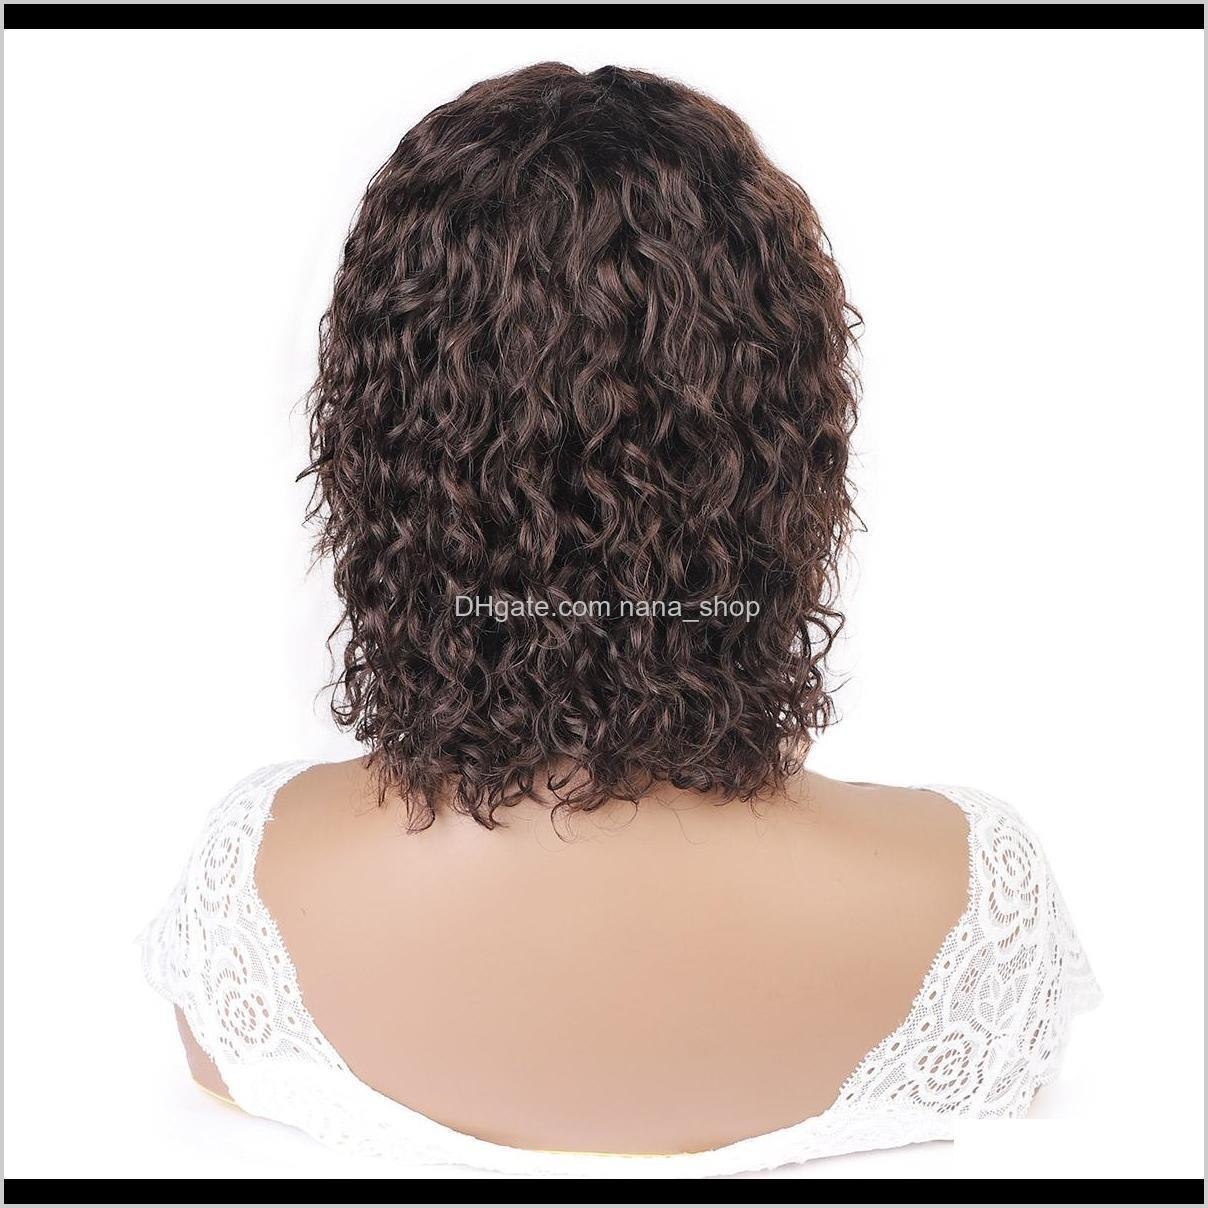 ishow 2# brazilian deep curly human hair wigs with bangs machine made wigs peruvian curly wave none lace wigs indian hair malaysian